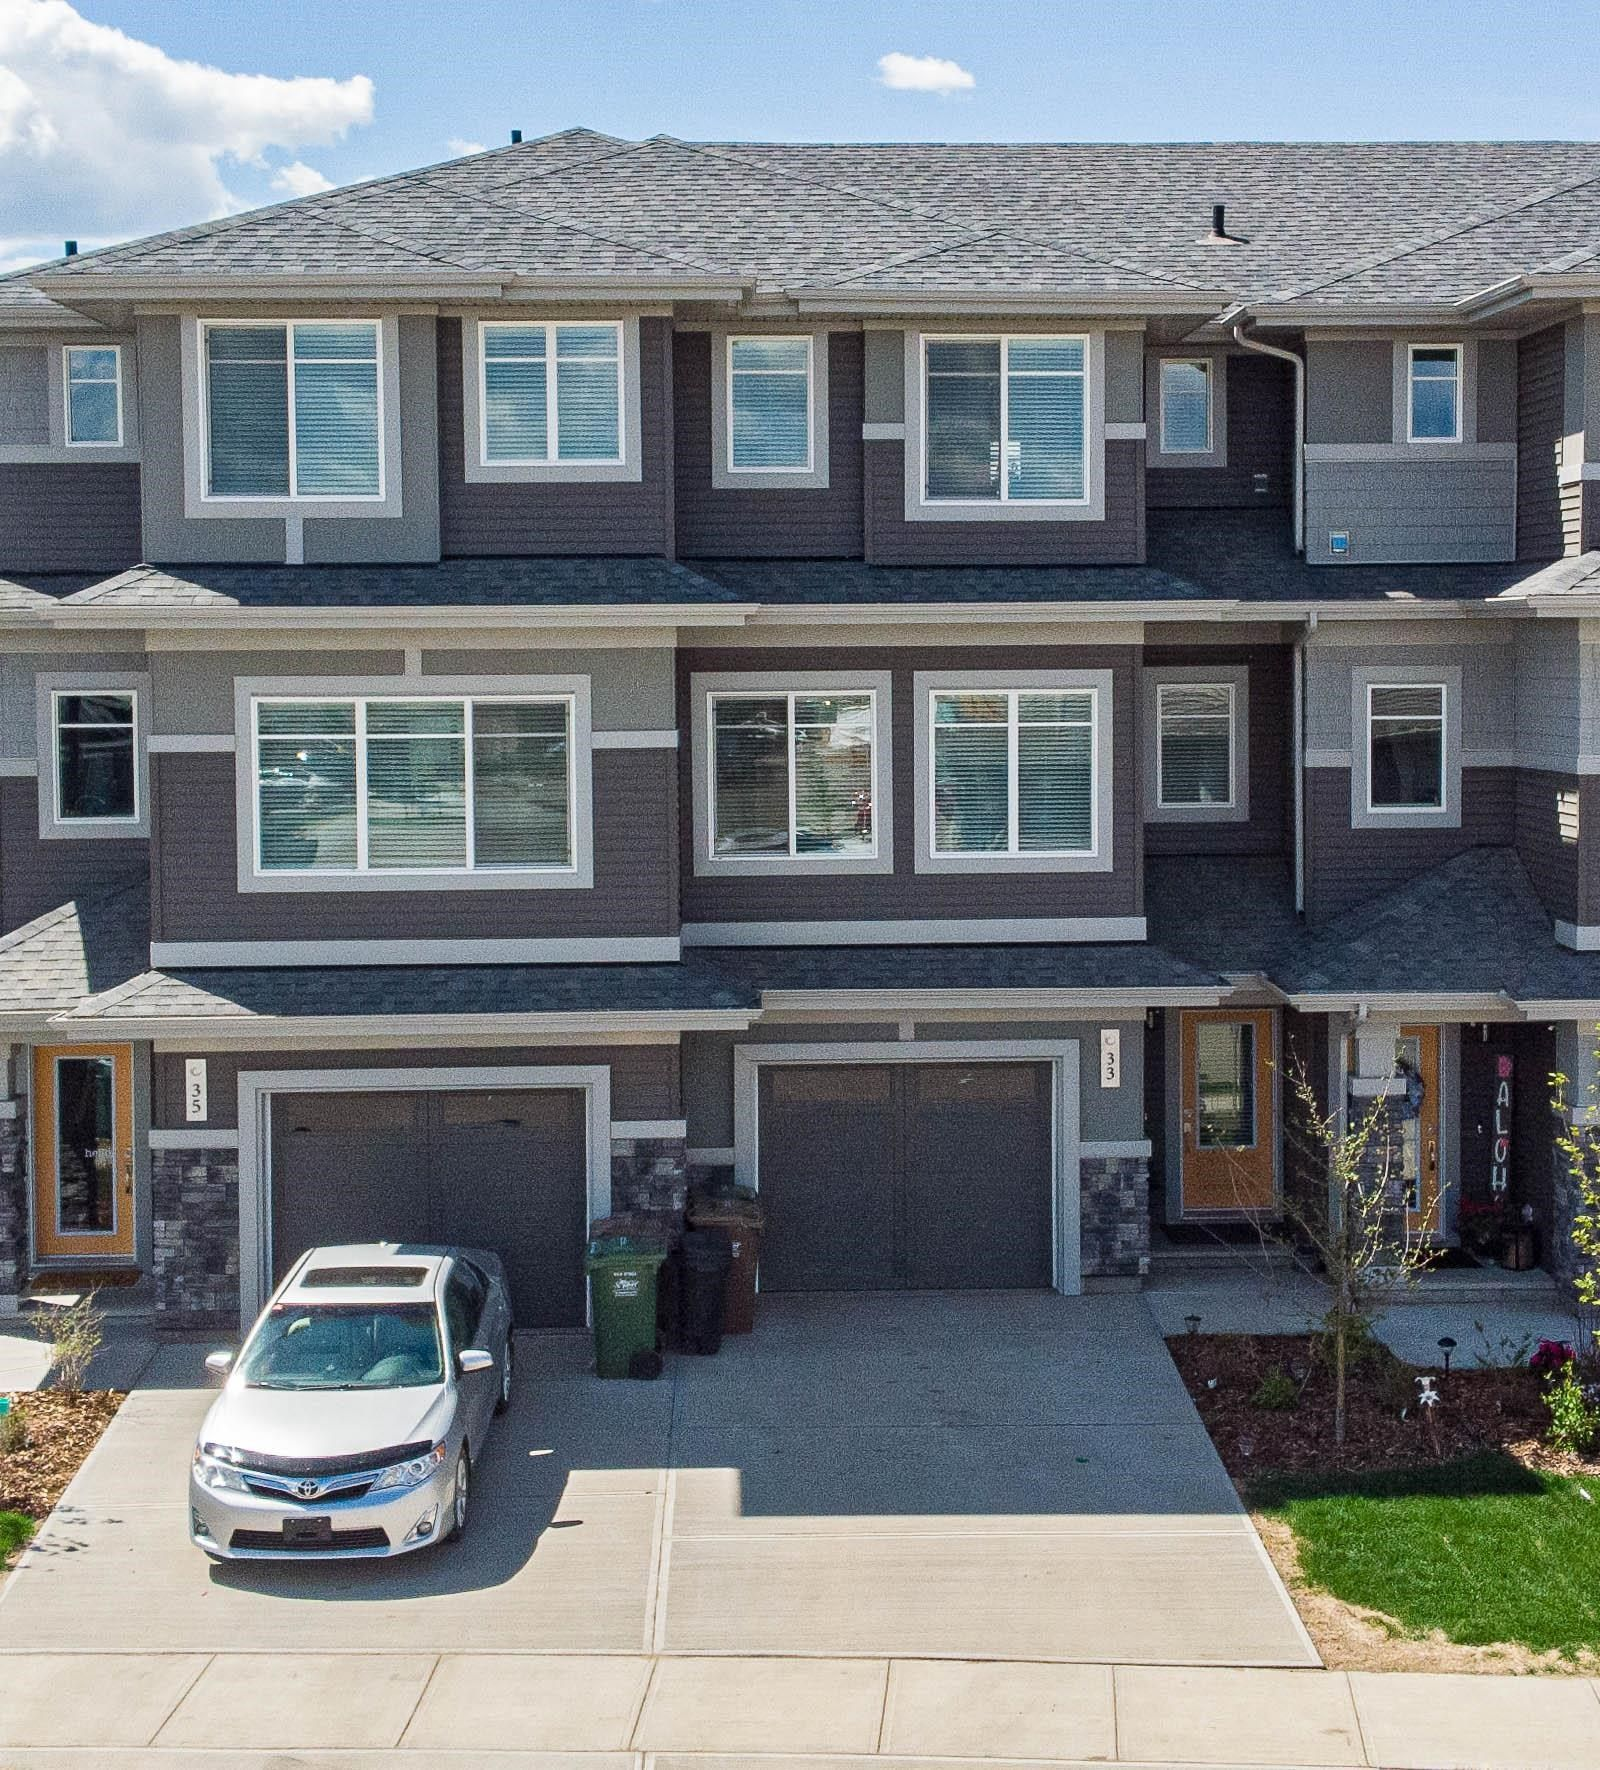 Main Photo: 33 JOYAL Way NW: St. Albert Attached Home for sale : MLS®# E4264929